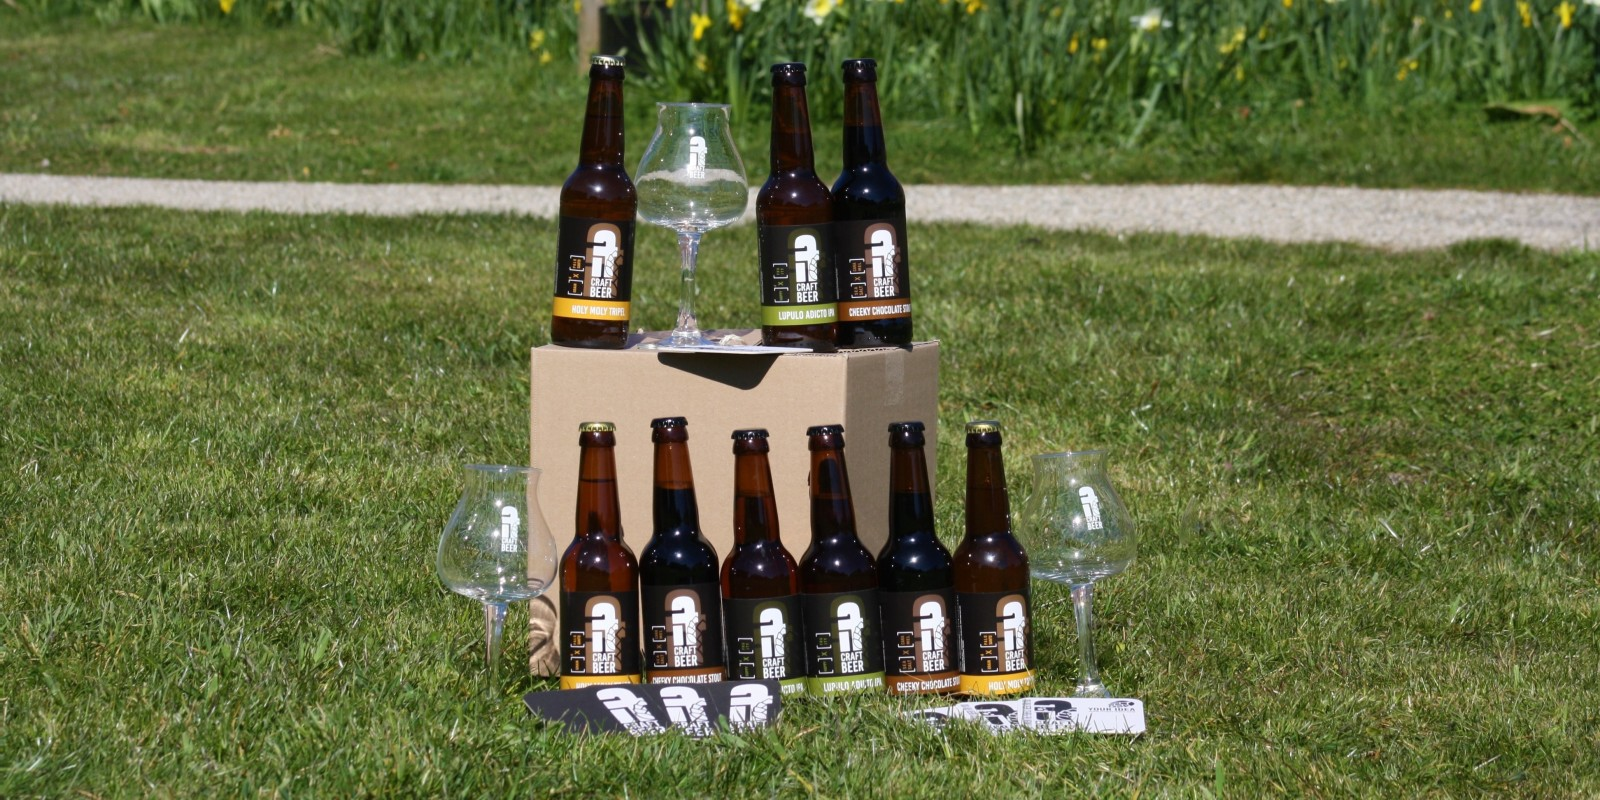 Order your own IF Craft Beer Box now!